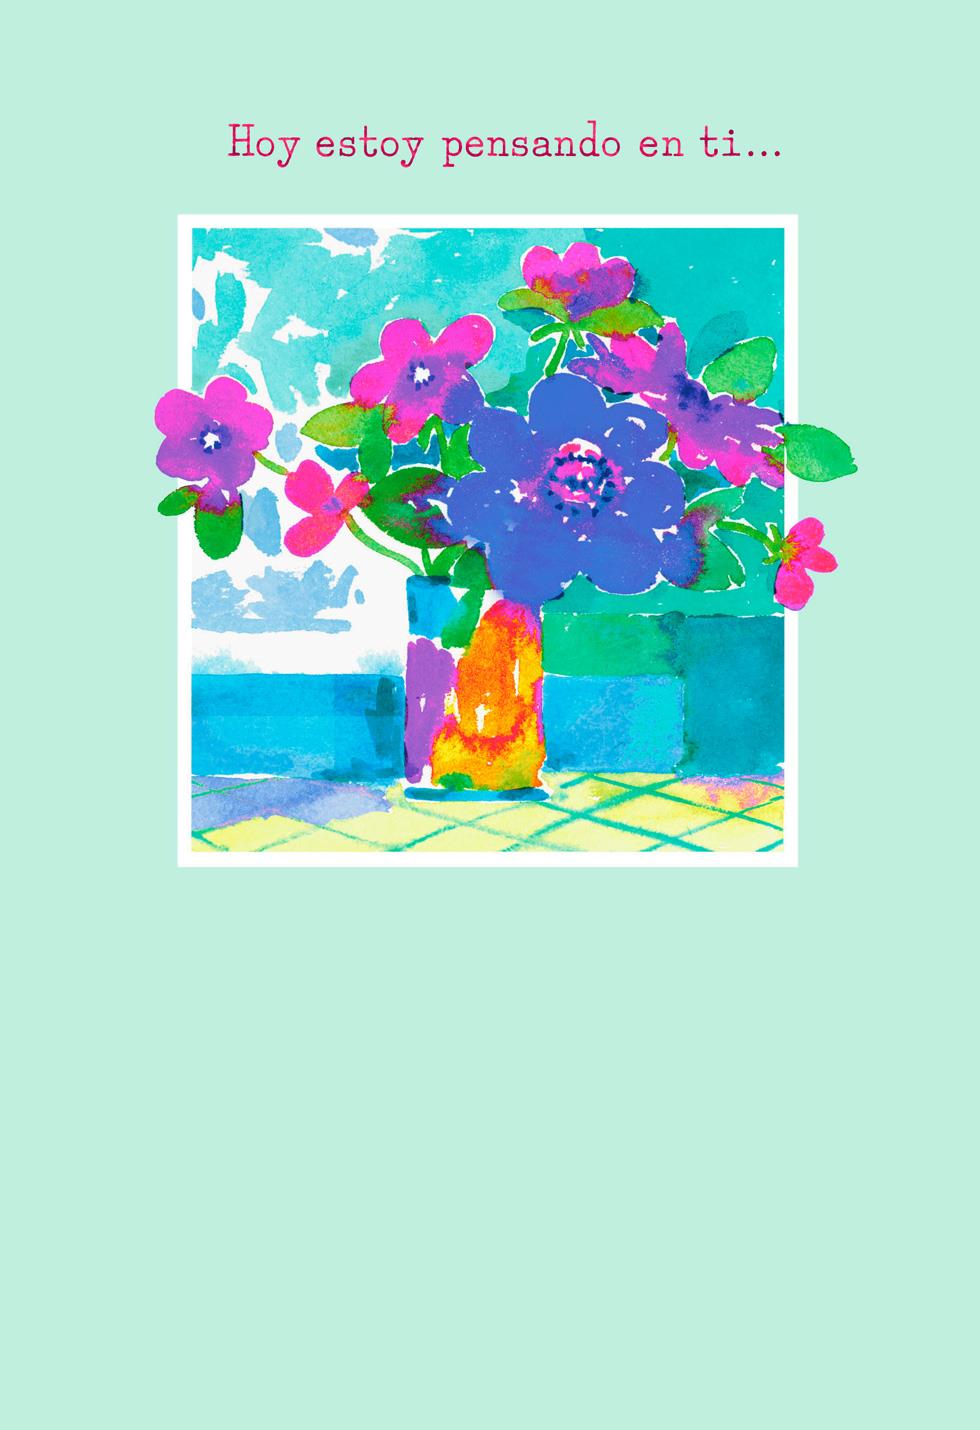 Watercolor Bouquet Spanish Language Thinking Of You Card